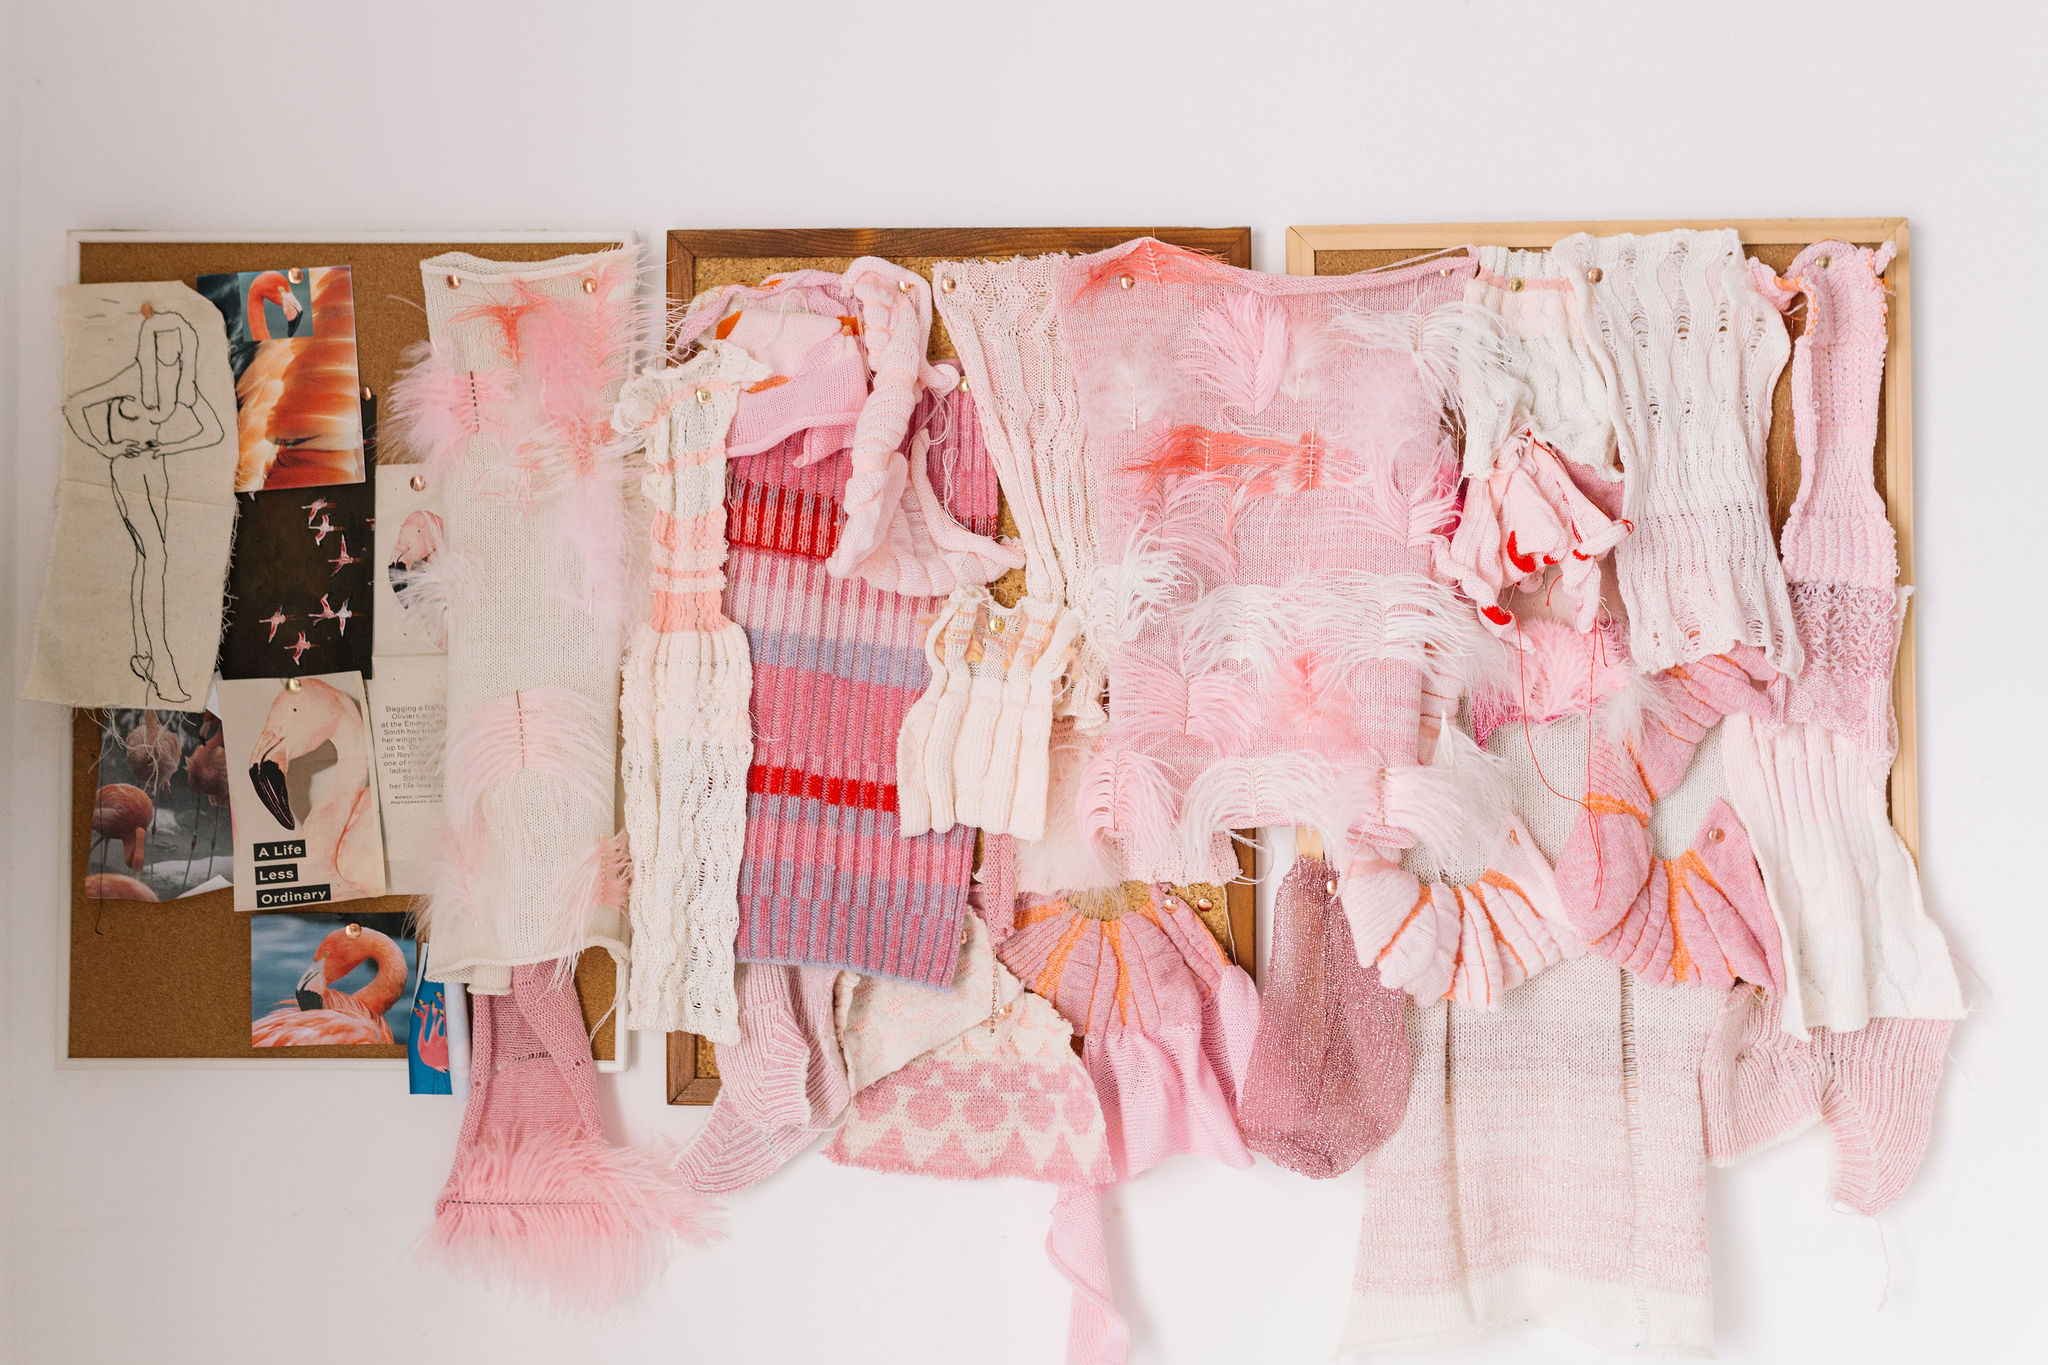 machine knit fabric samples displayed on a cork board